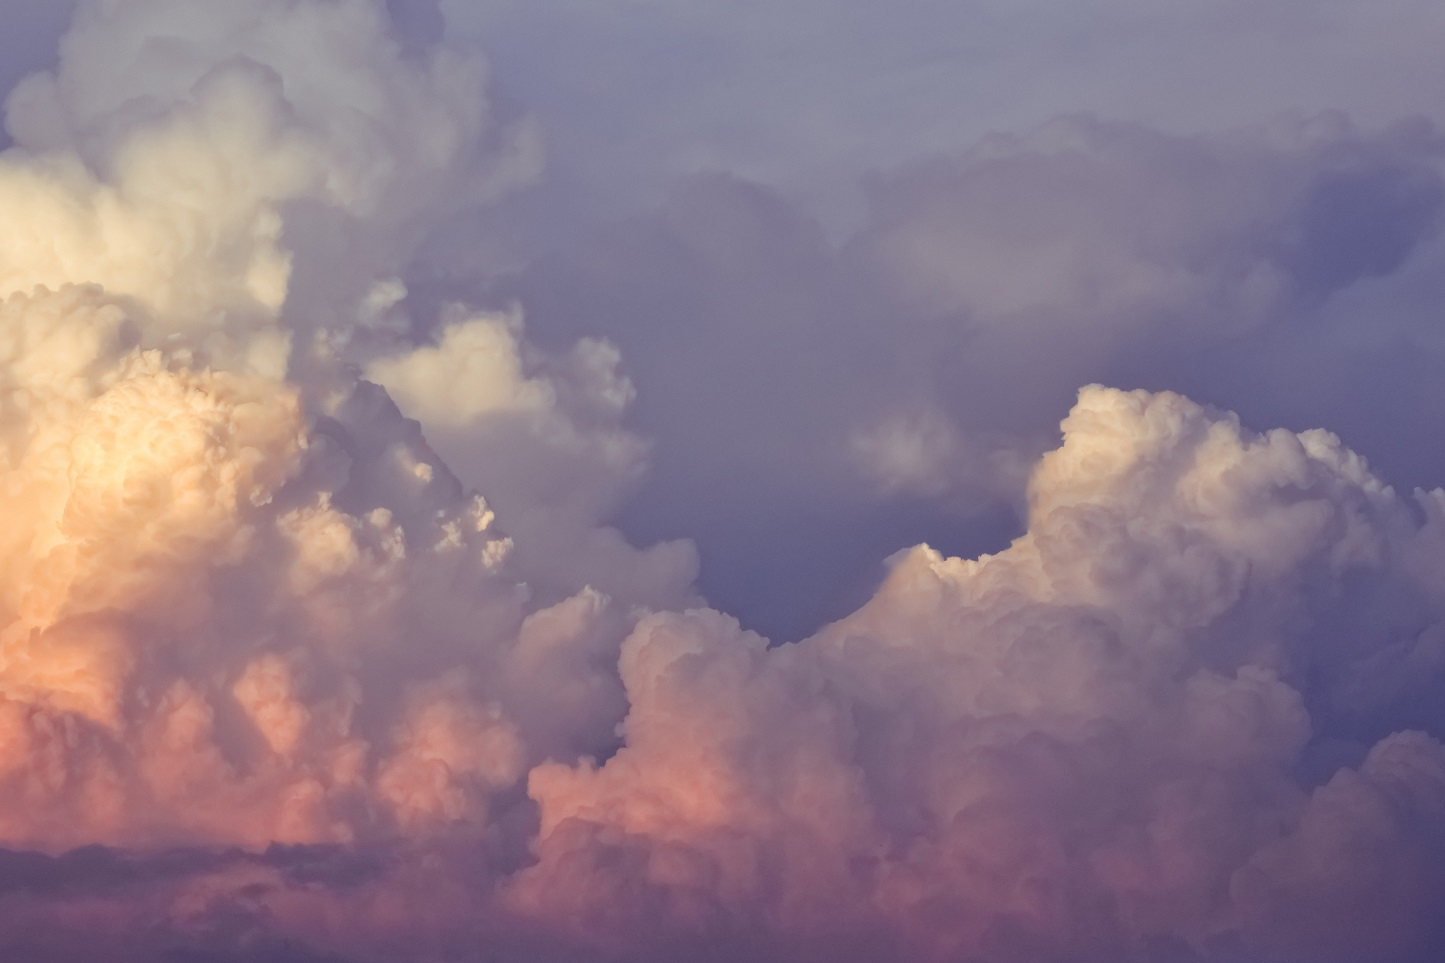 clouds with pink lining